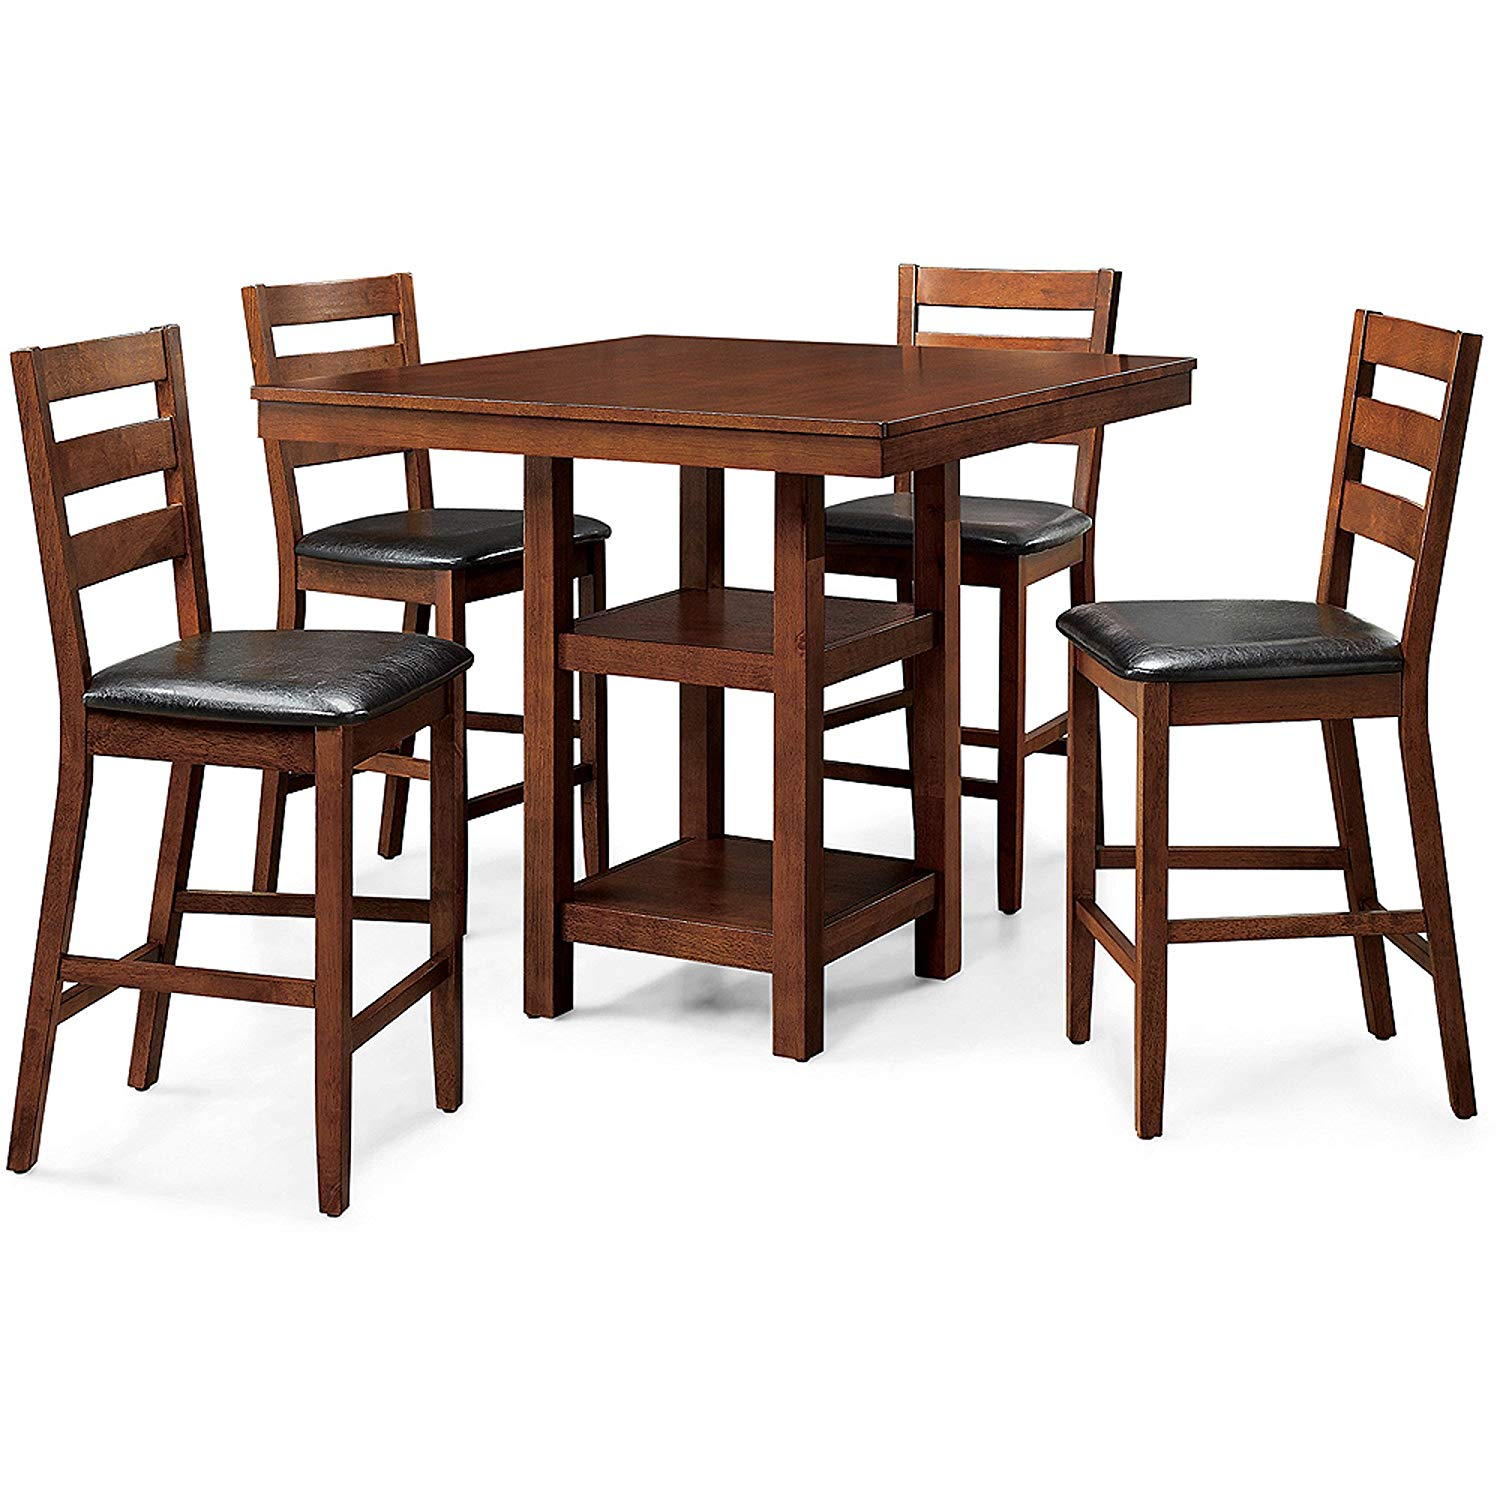 Sturdy 5-Piece Counter Height Dining Set, Includes Square Table and Four Padded Chairs, Sturdy Wood Construction, Open-Shelf Pedestal for Extra Storage, Easy to Clean, Mocha Finish